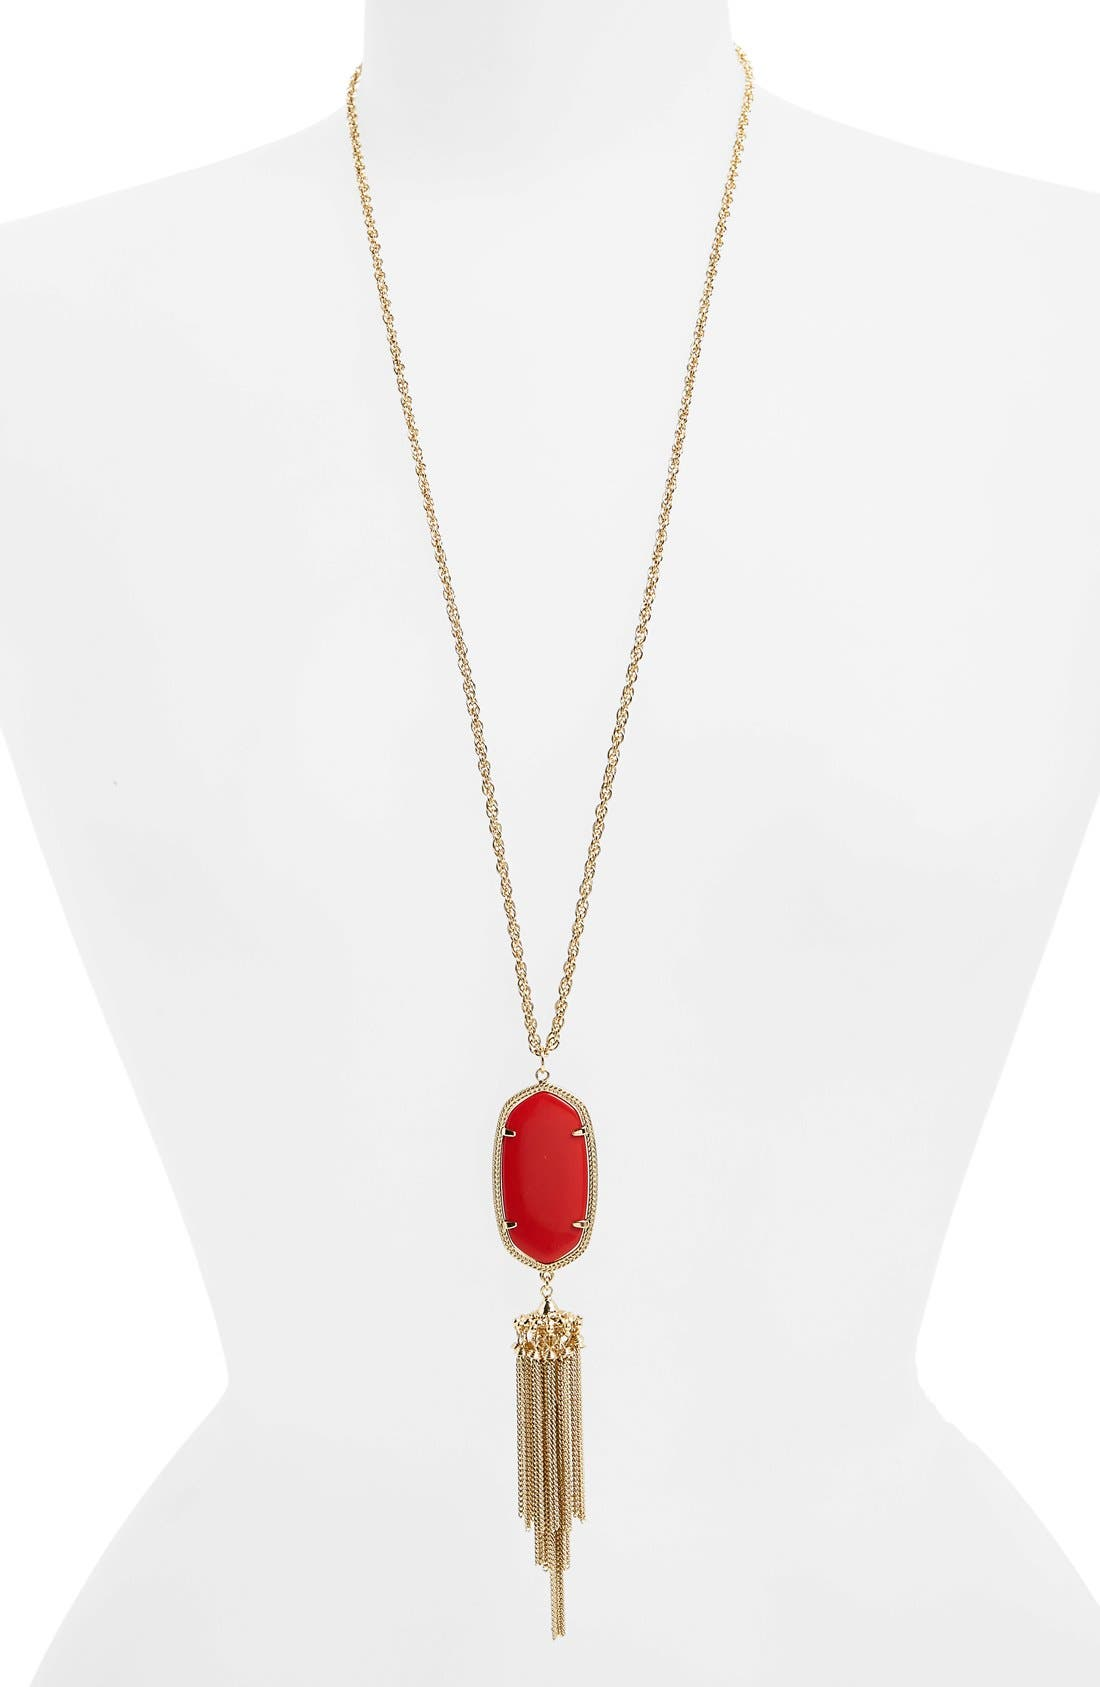 Alternate Image 1 Selected - Kendra Scott 'Rayne' Tassel Pendant Necklace